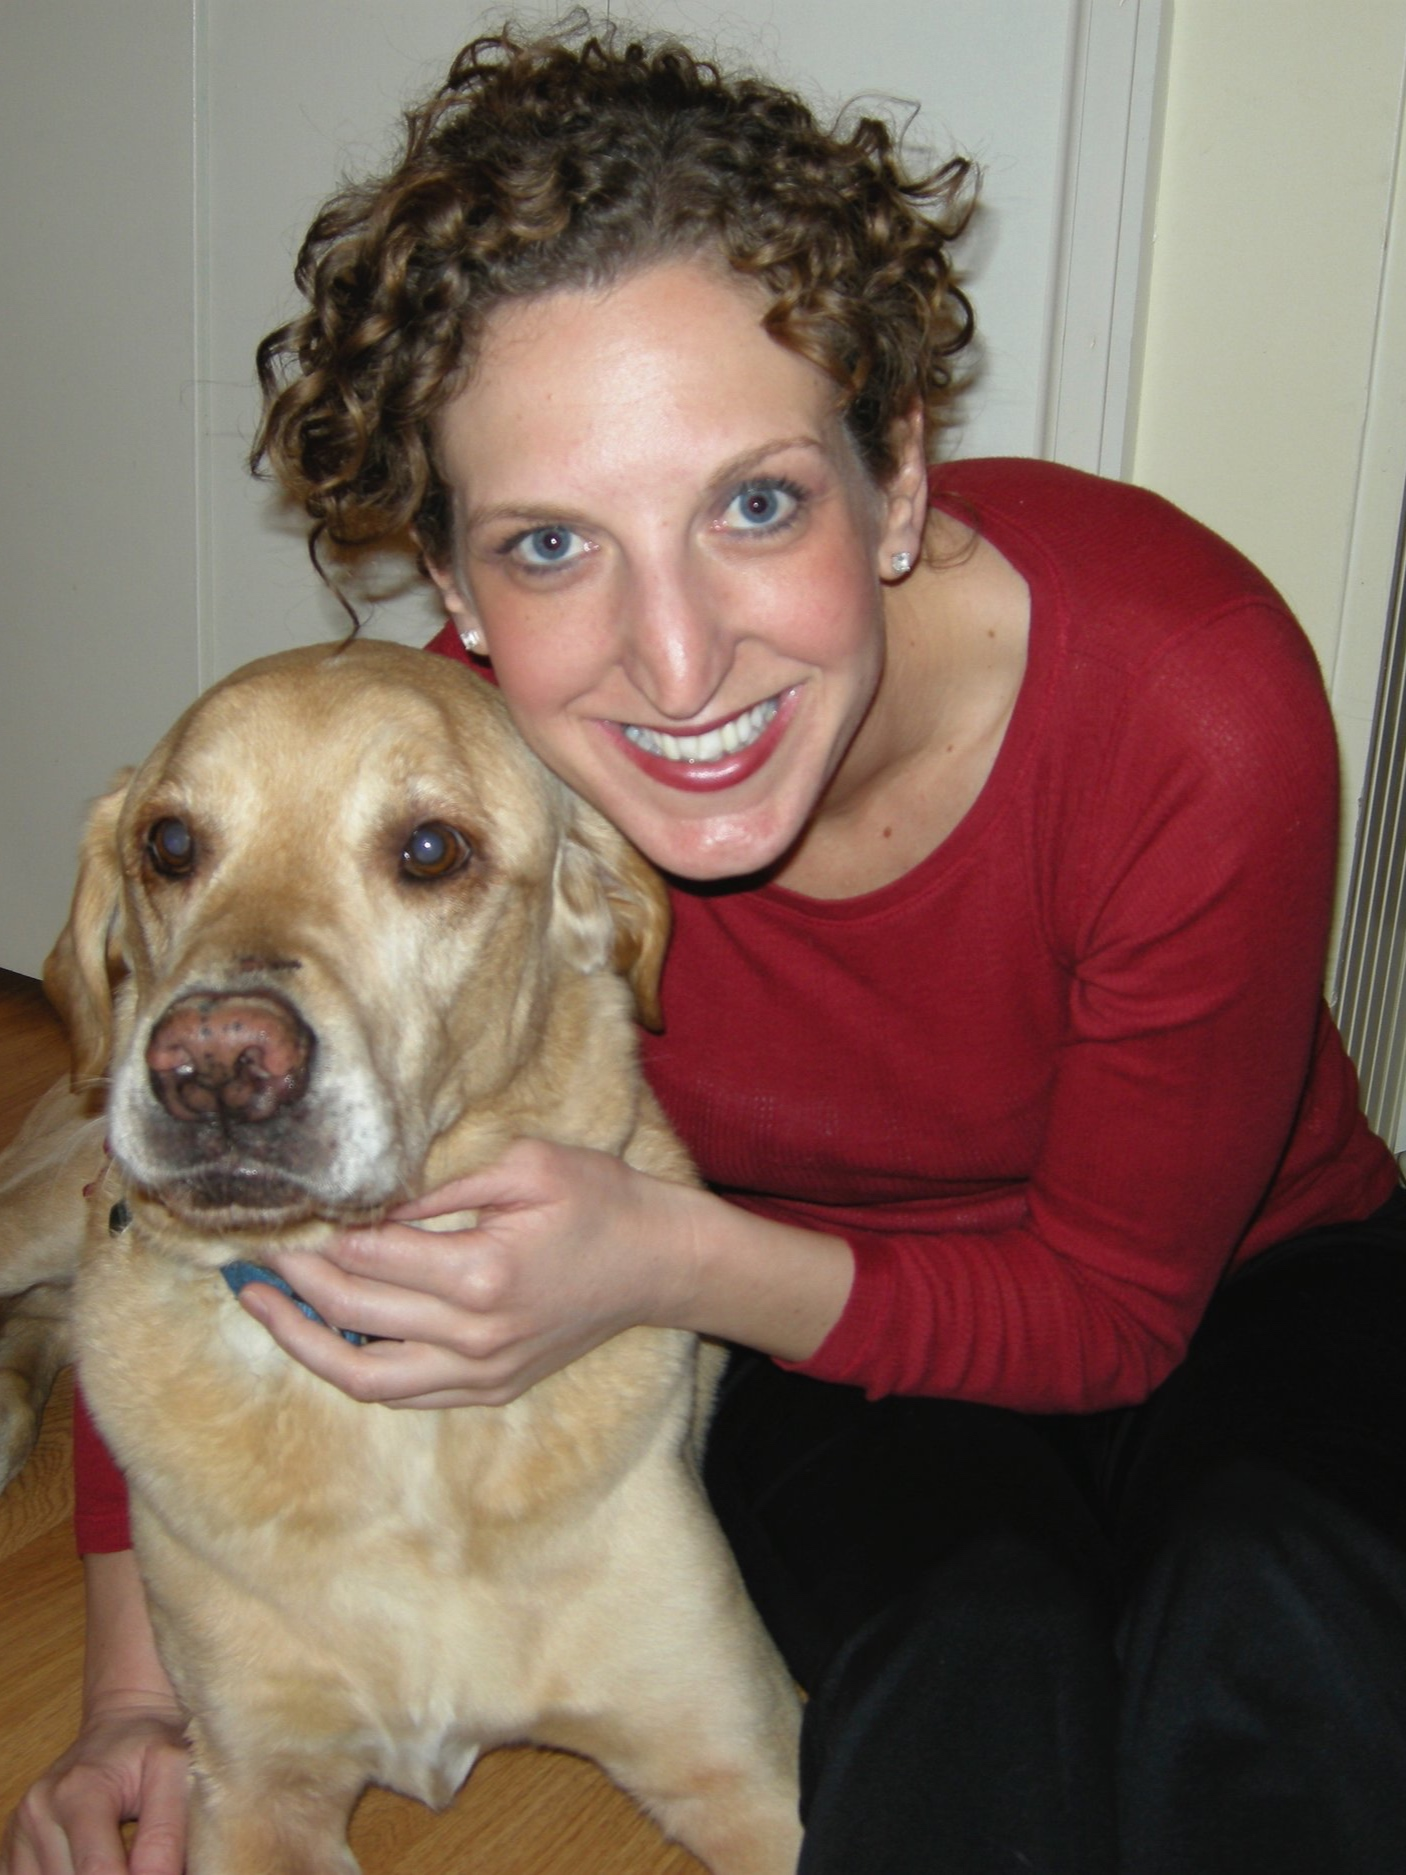 - My daughter, Julie Ann Christiansen, died by suicide in the thirty-fourth year of her life on May 29, 2010. Just eight weeks before her death, I took this photo, the last I ever took of her, as she posed with her dog Phoenix